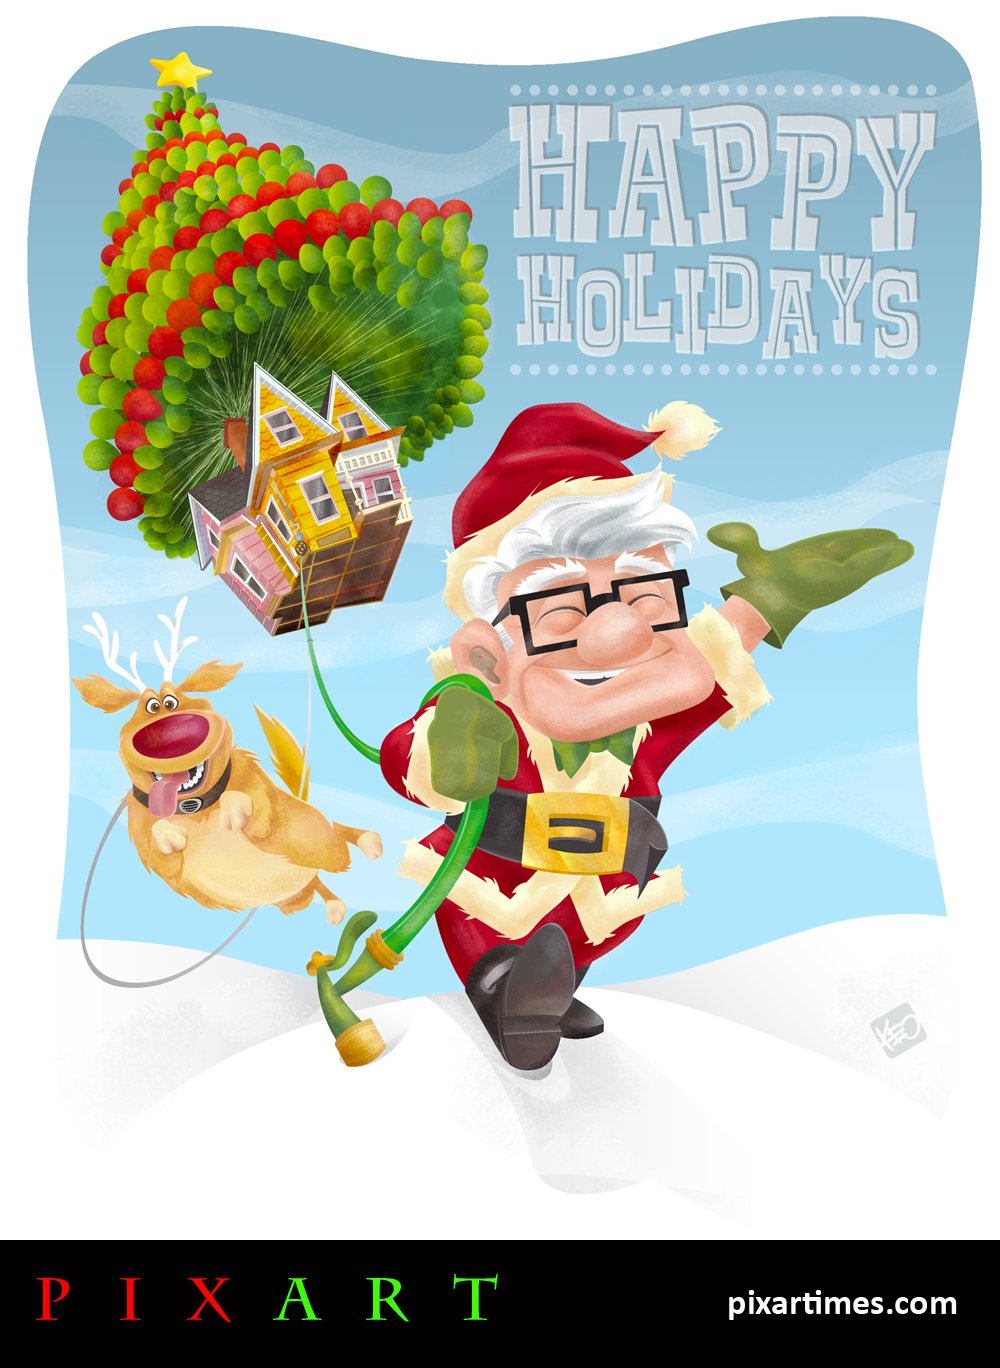 Pixar_UP_Keith_Frawley